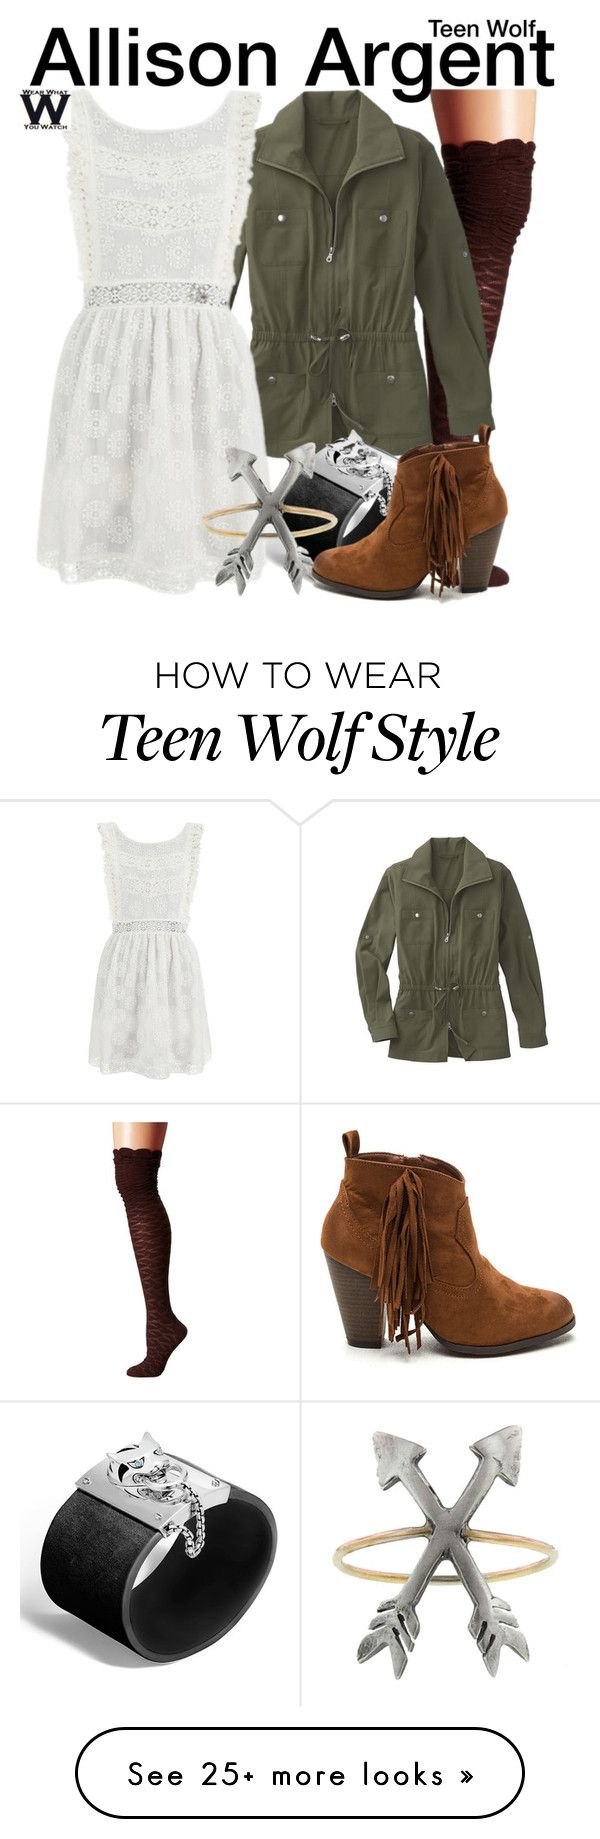 """Teen Wolf"" by wearwhatyouwatch on Polyvore featuring M&F Western, TravelSmith, MINKPINK, John Hardy, Workhorse, television and wearwhatyouwatch"